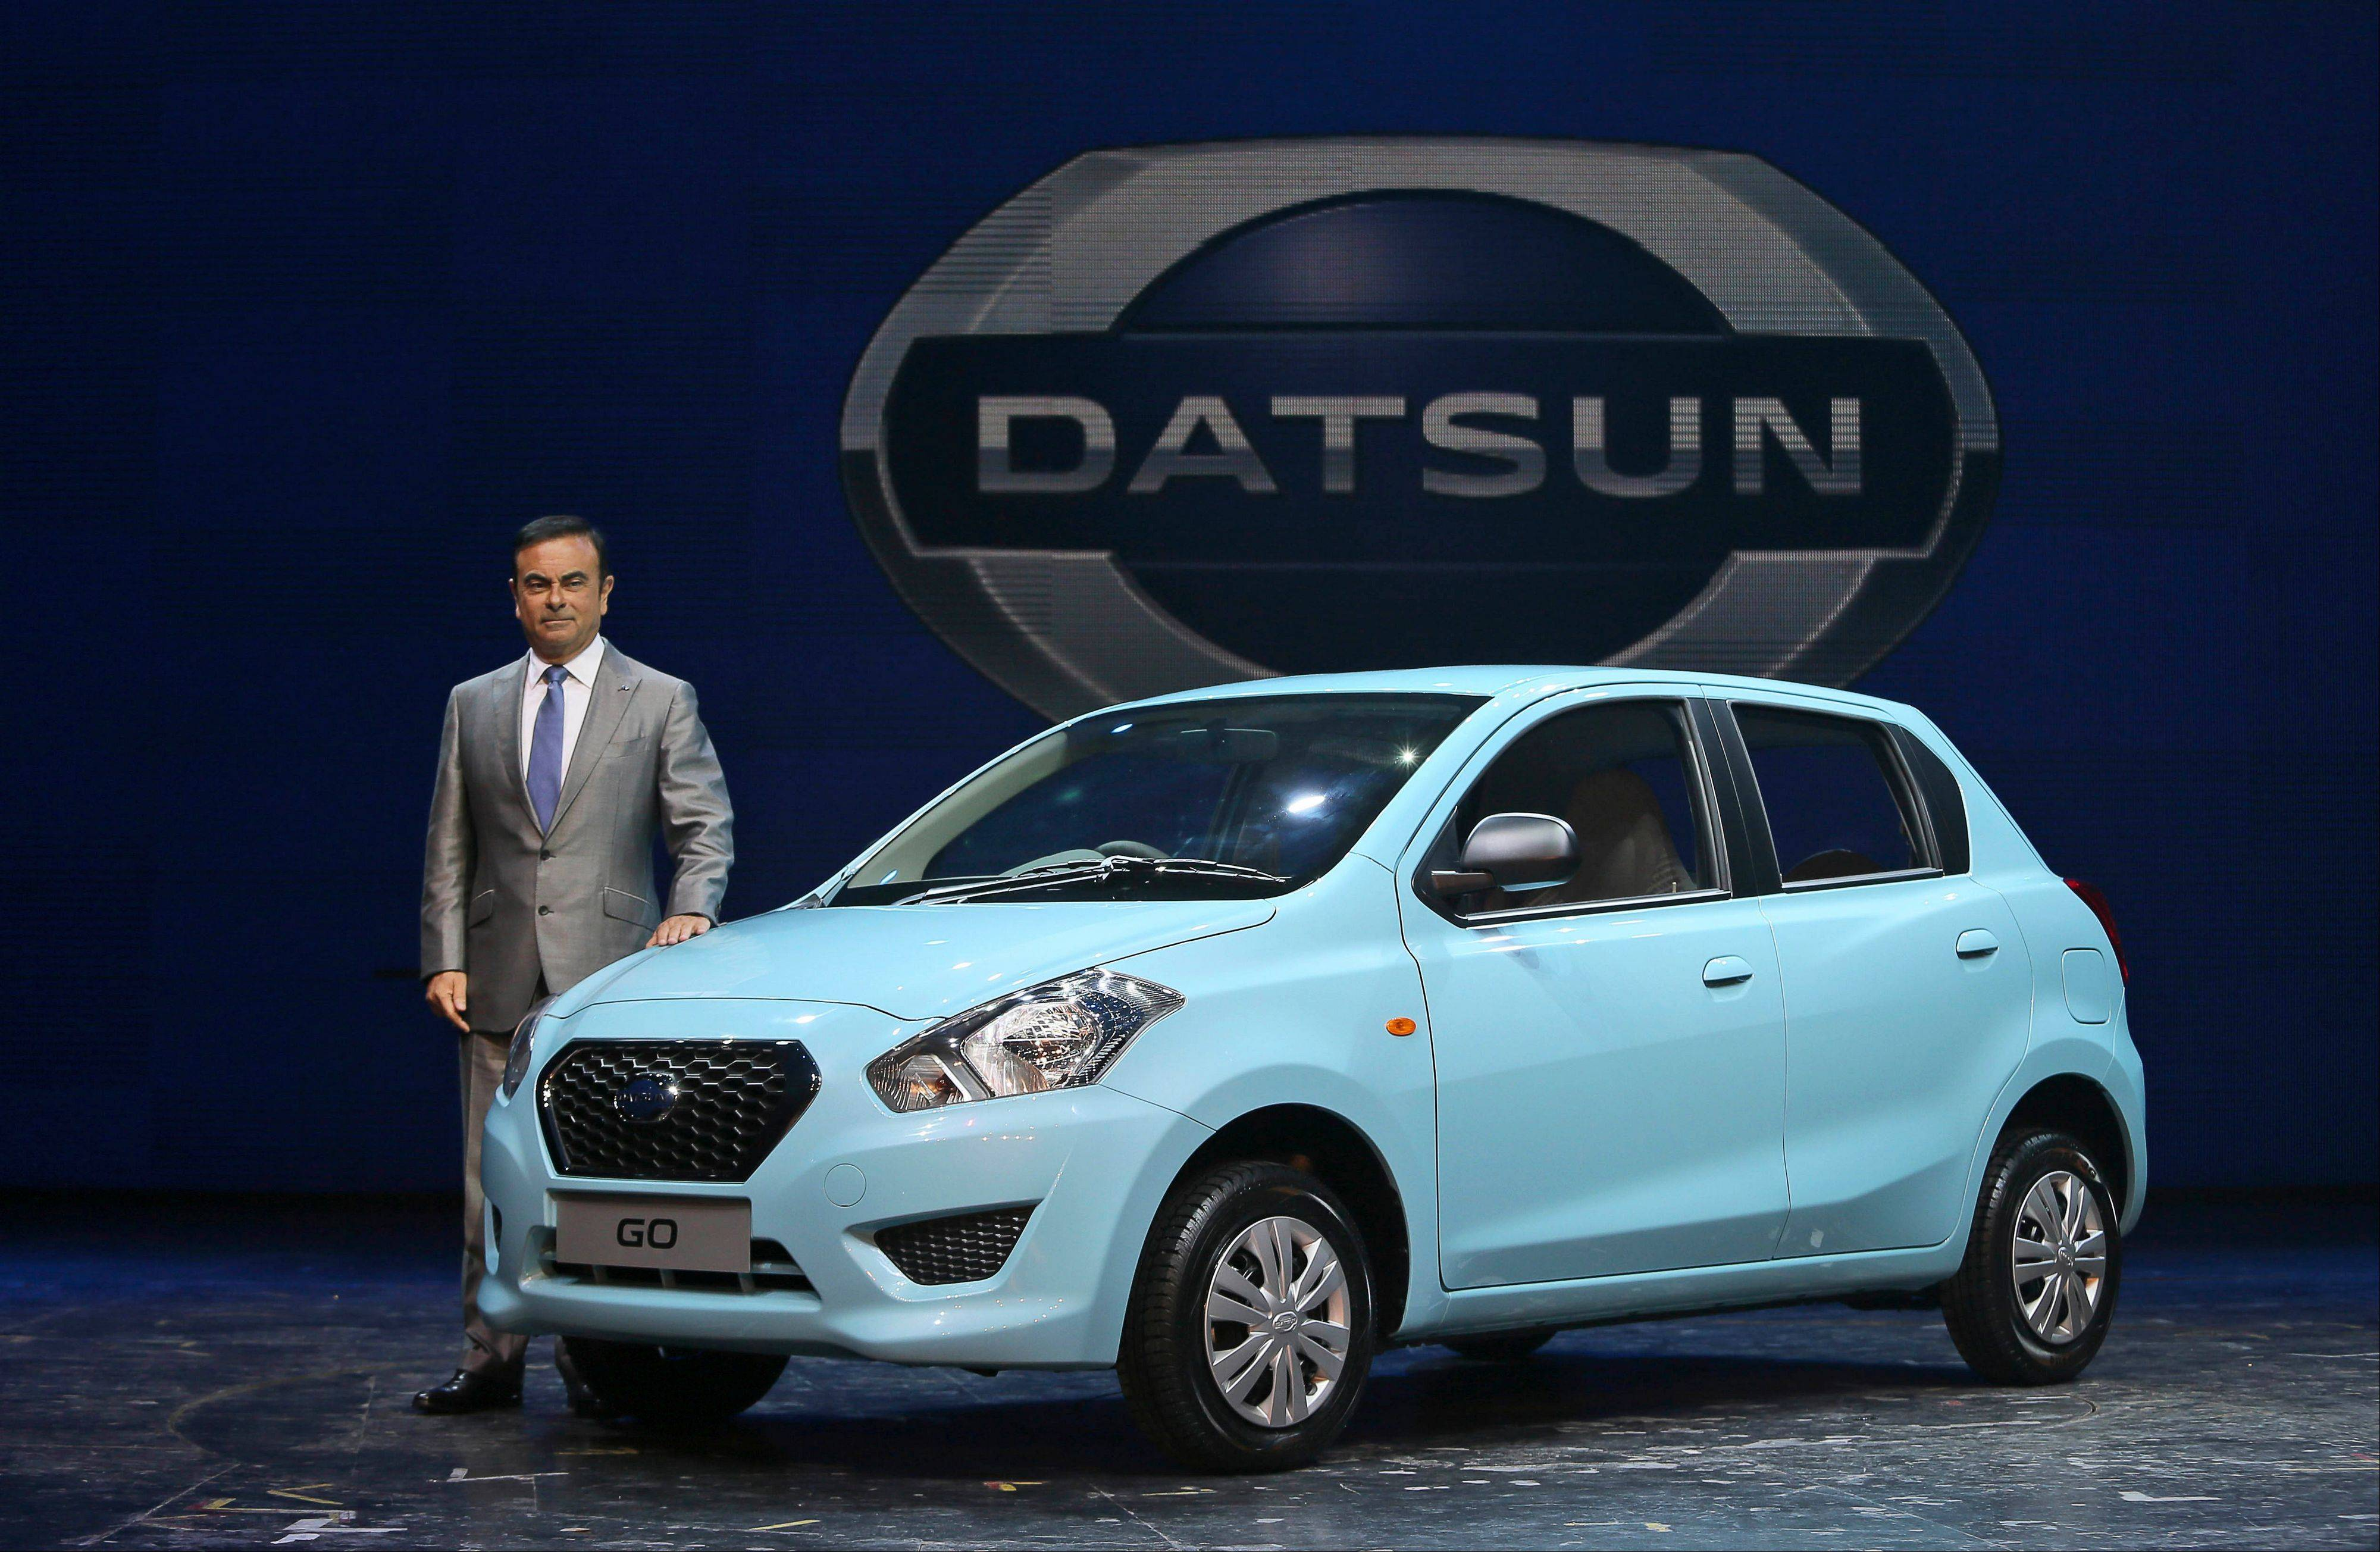 Nissan Motor Co. President and CEO Carlos Ghosn with the Datsun Go Monday during its global launch in New Delhi, India. Nissan has introduced the first new Datsun model in more than three decades in the Indian capital. The company hopes bringing back the brand that built its U.S. business will fuel growth in emerging markets with a new generation of car buyers. The re-imagined Datsun -- a five-seat hatchback -- will go on sale in India next year for about $6,670.